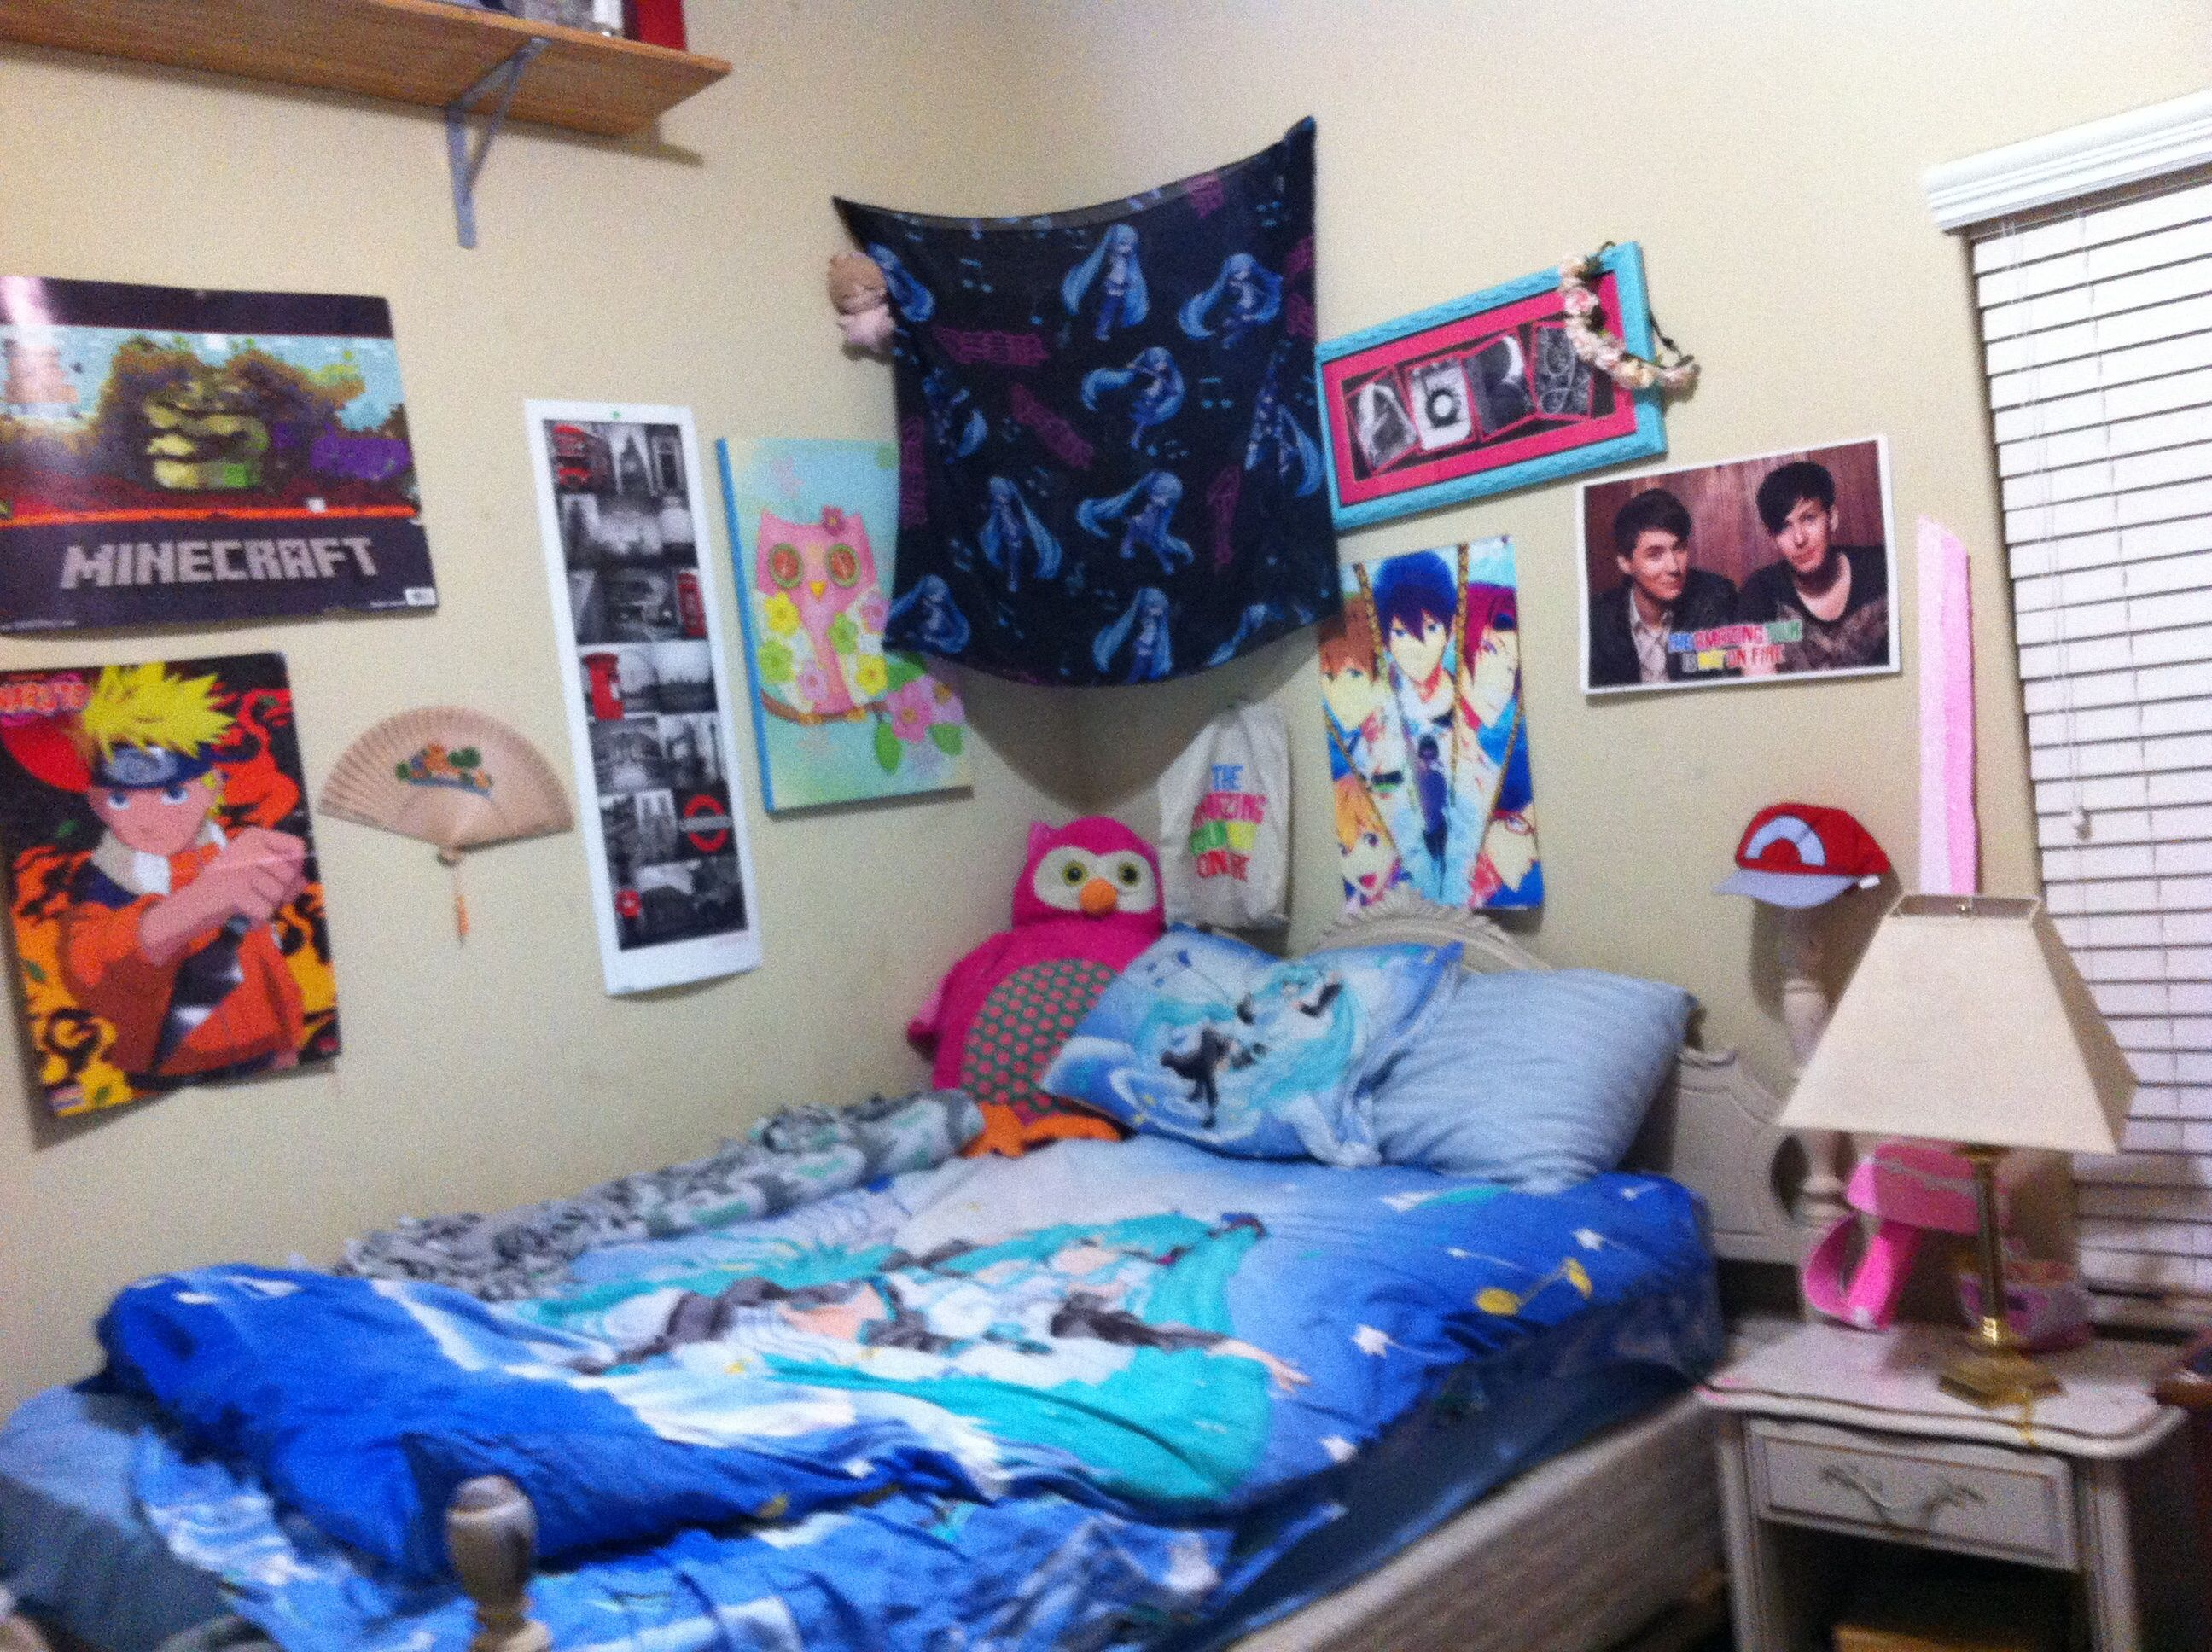 Me weeb room in 2020 Gaming room setup, Room setup, Room